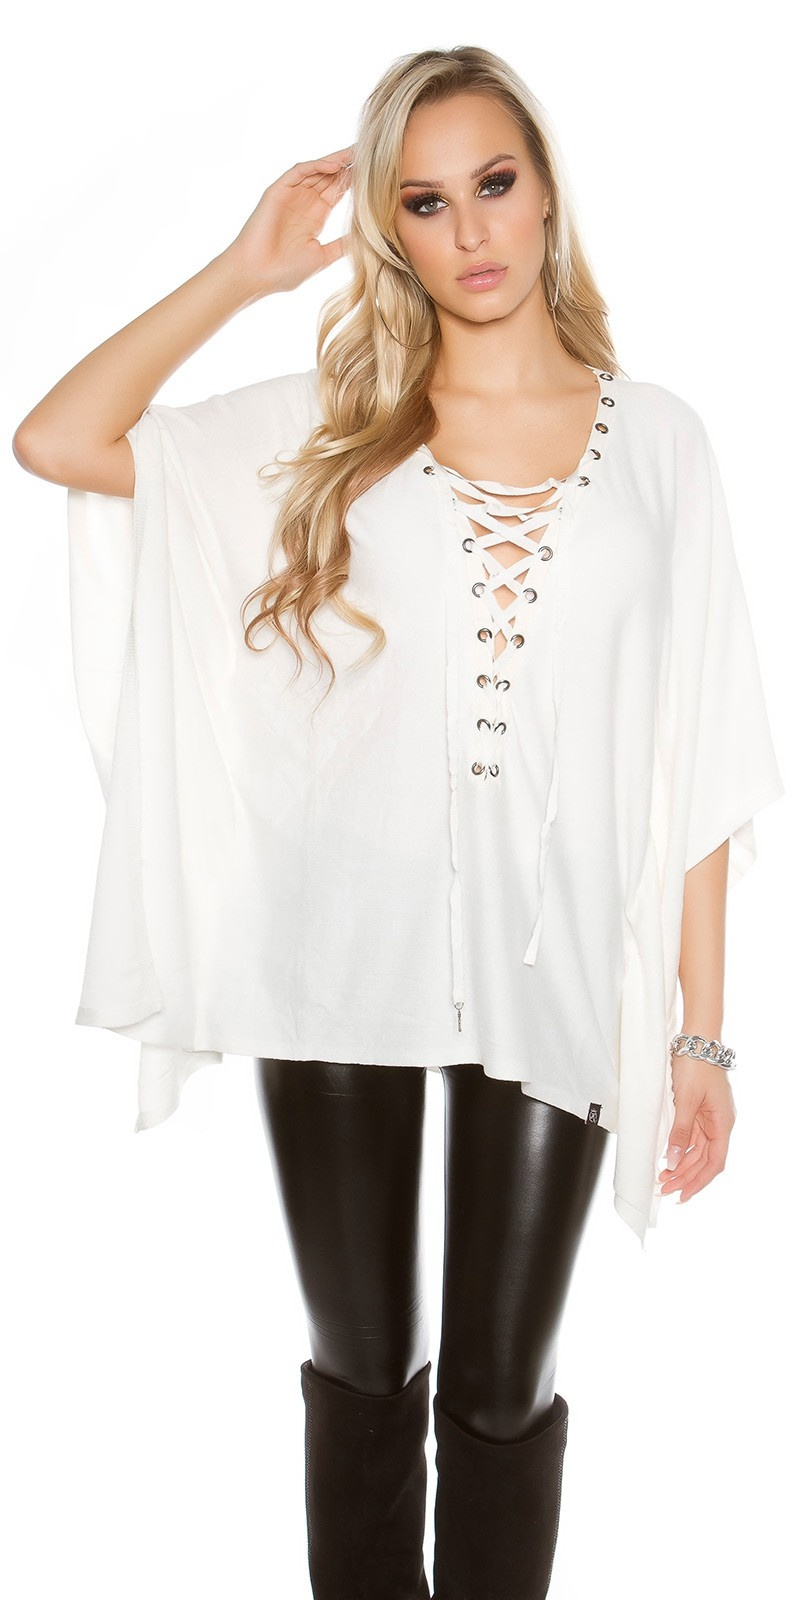 Trendy KouCla bat - poncho look jumper White